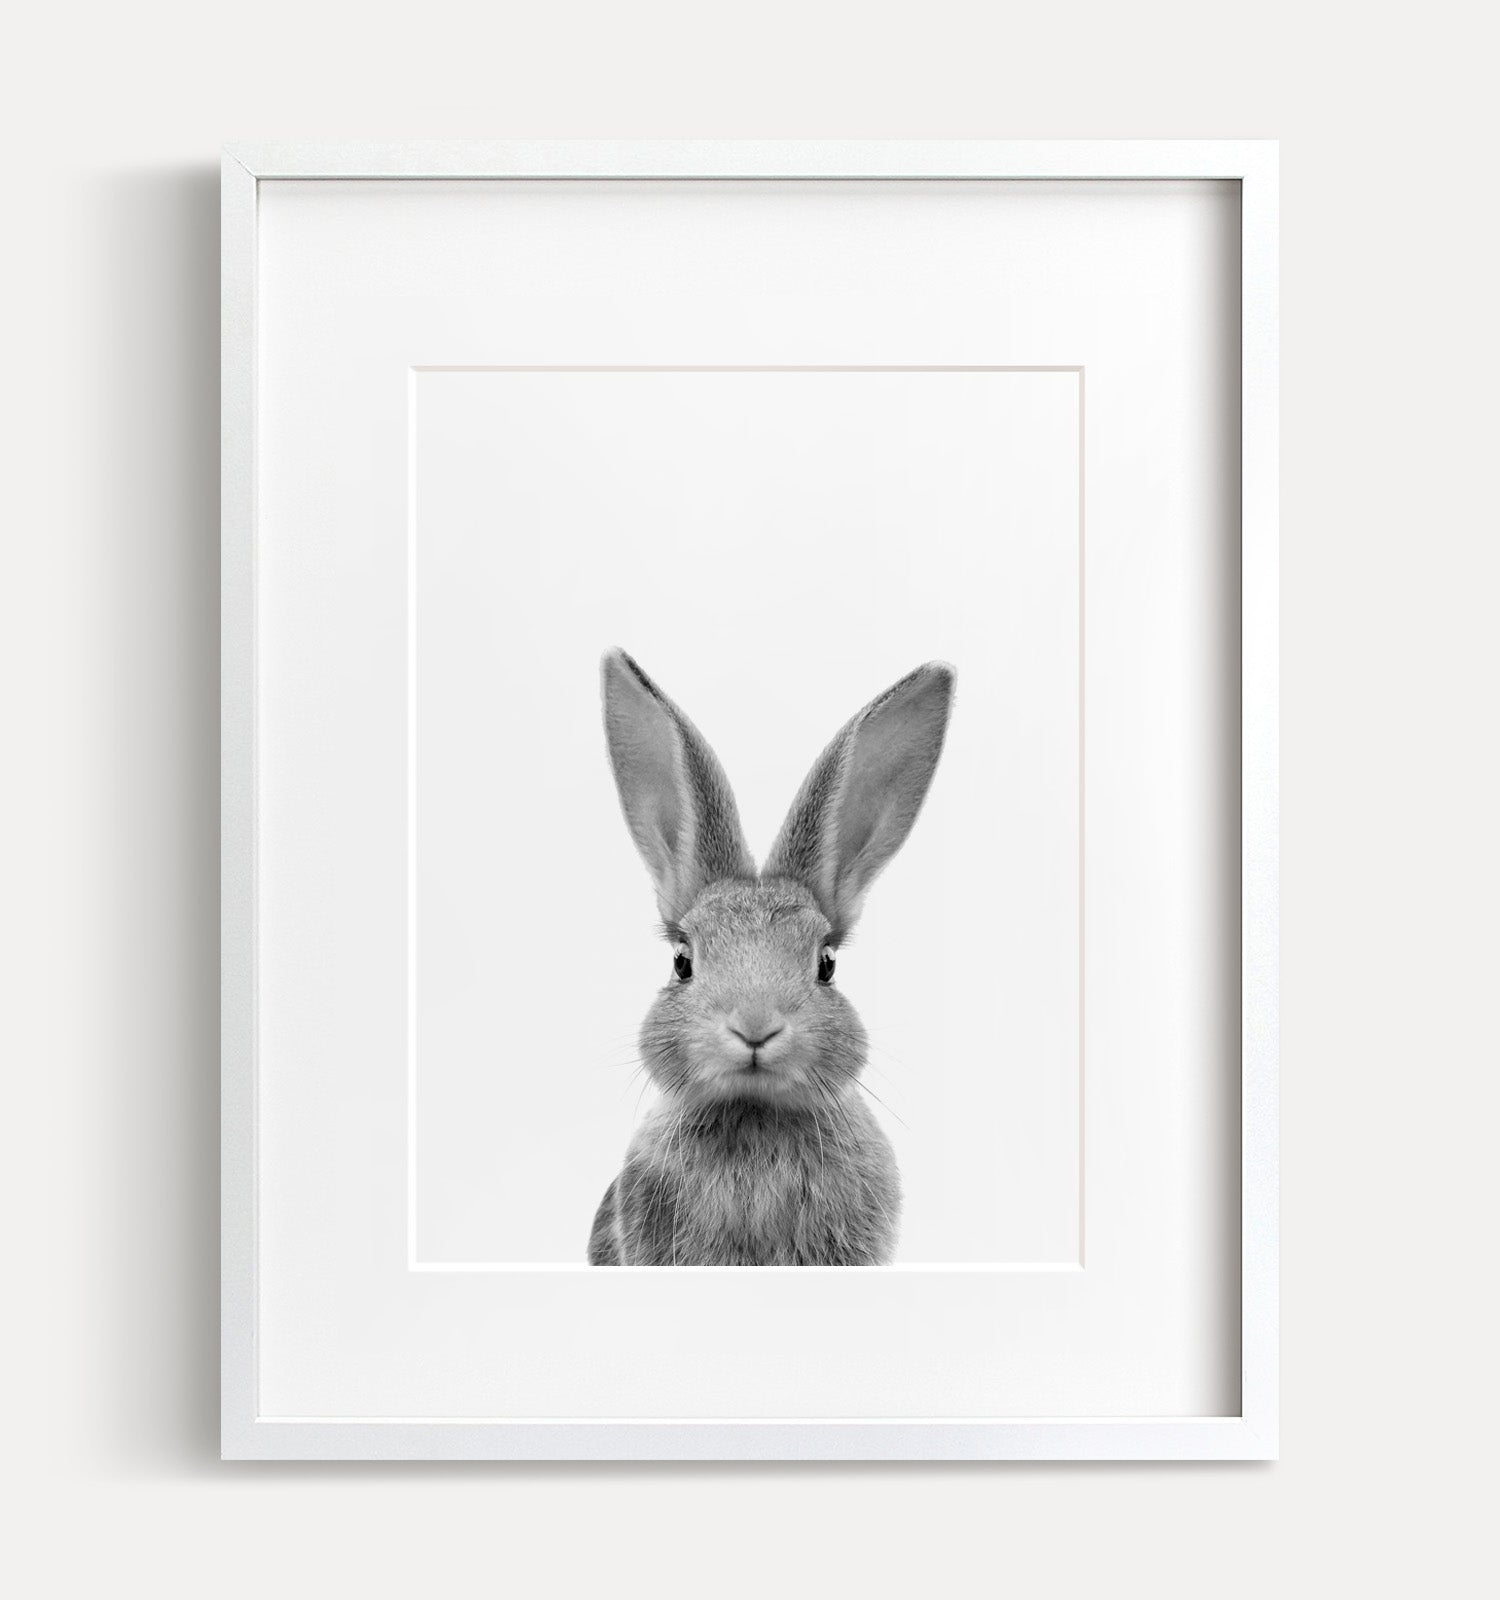 NO FRAME Personalised Watercolour Peter Rabbit Family A4 PRINT Picture Design 2